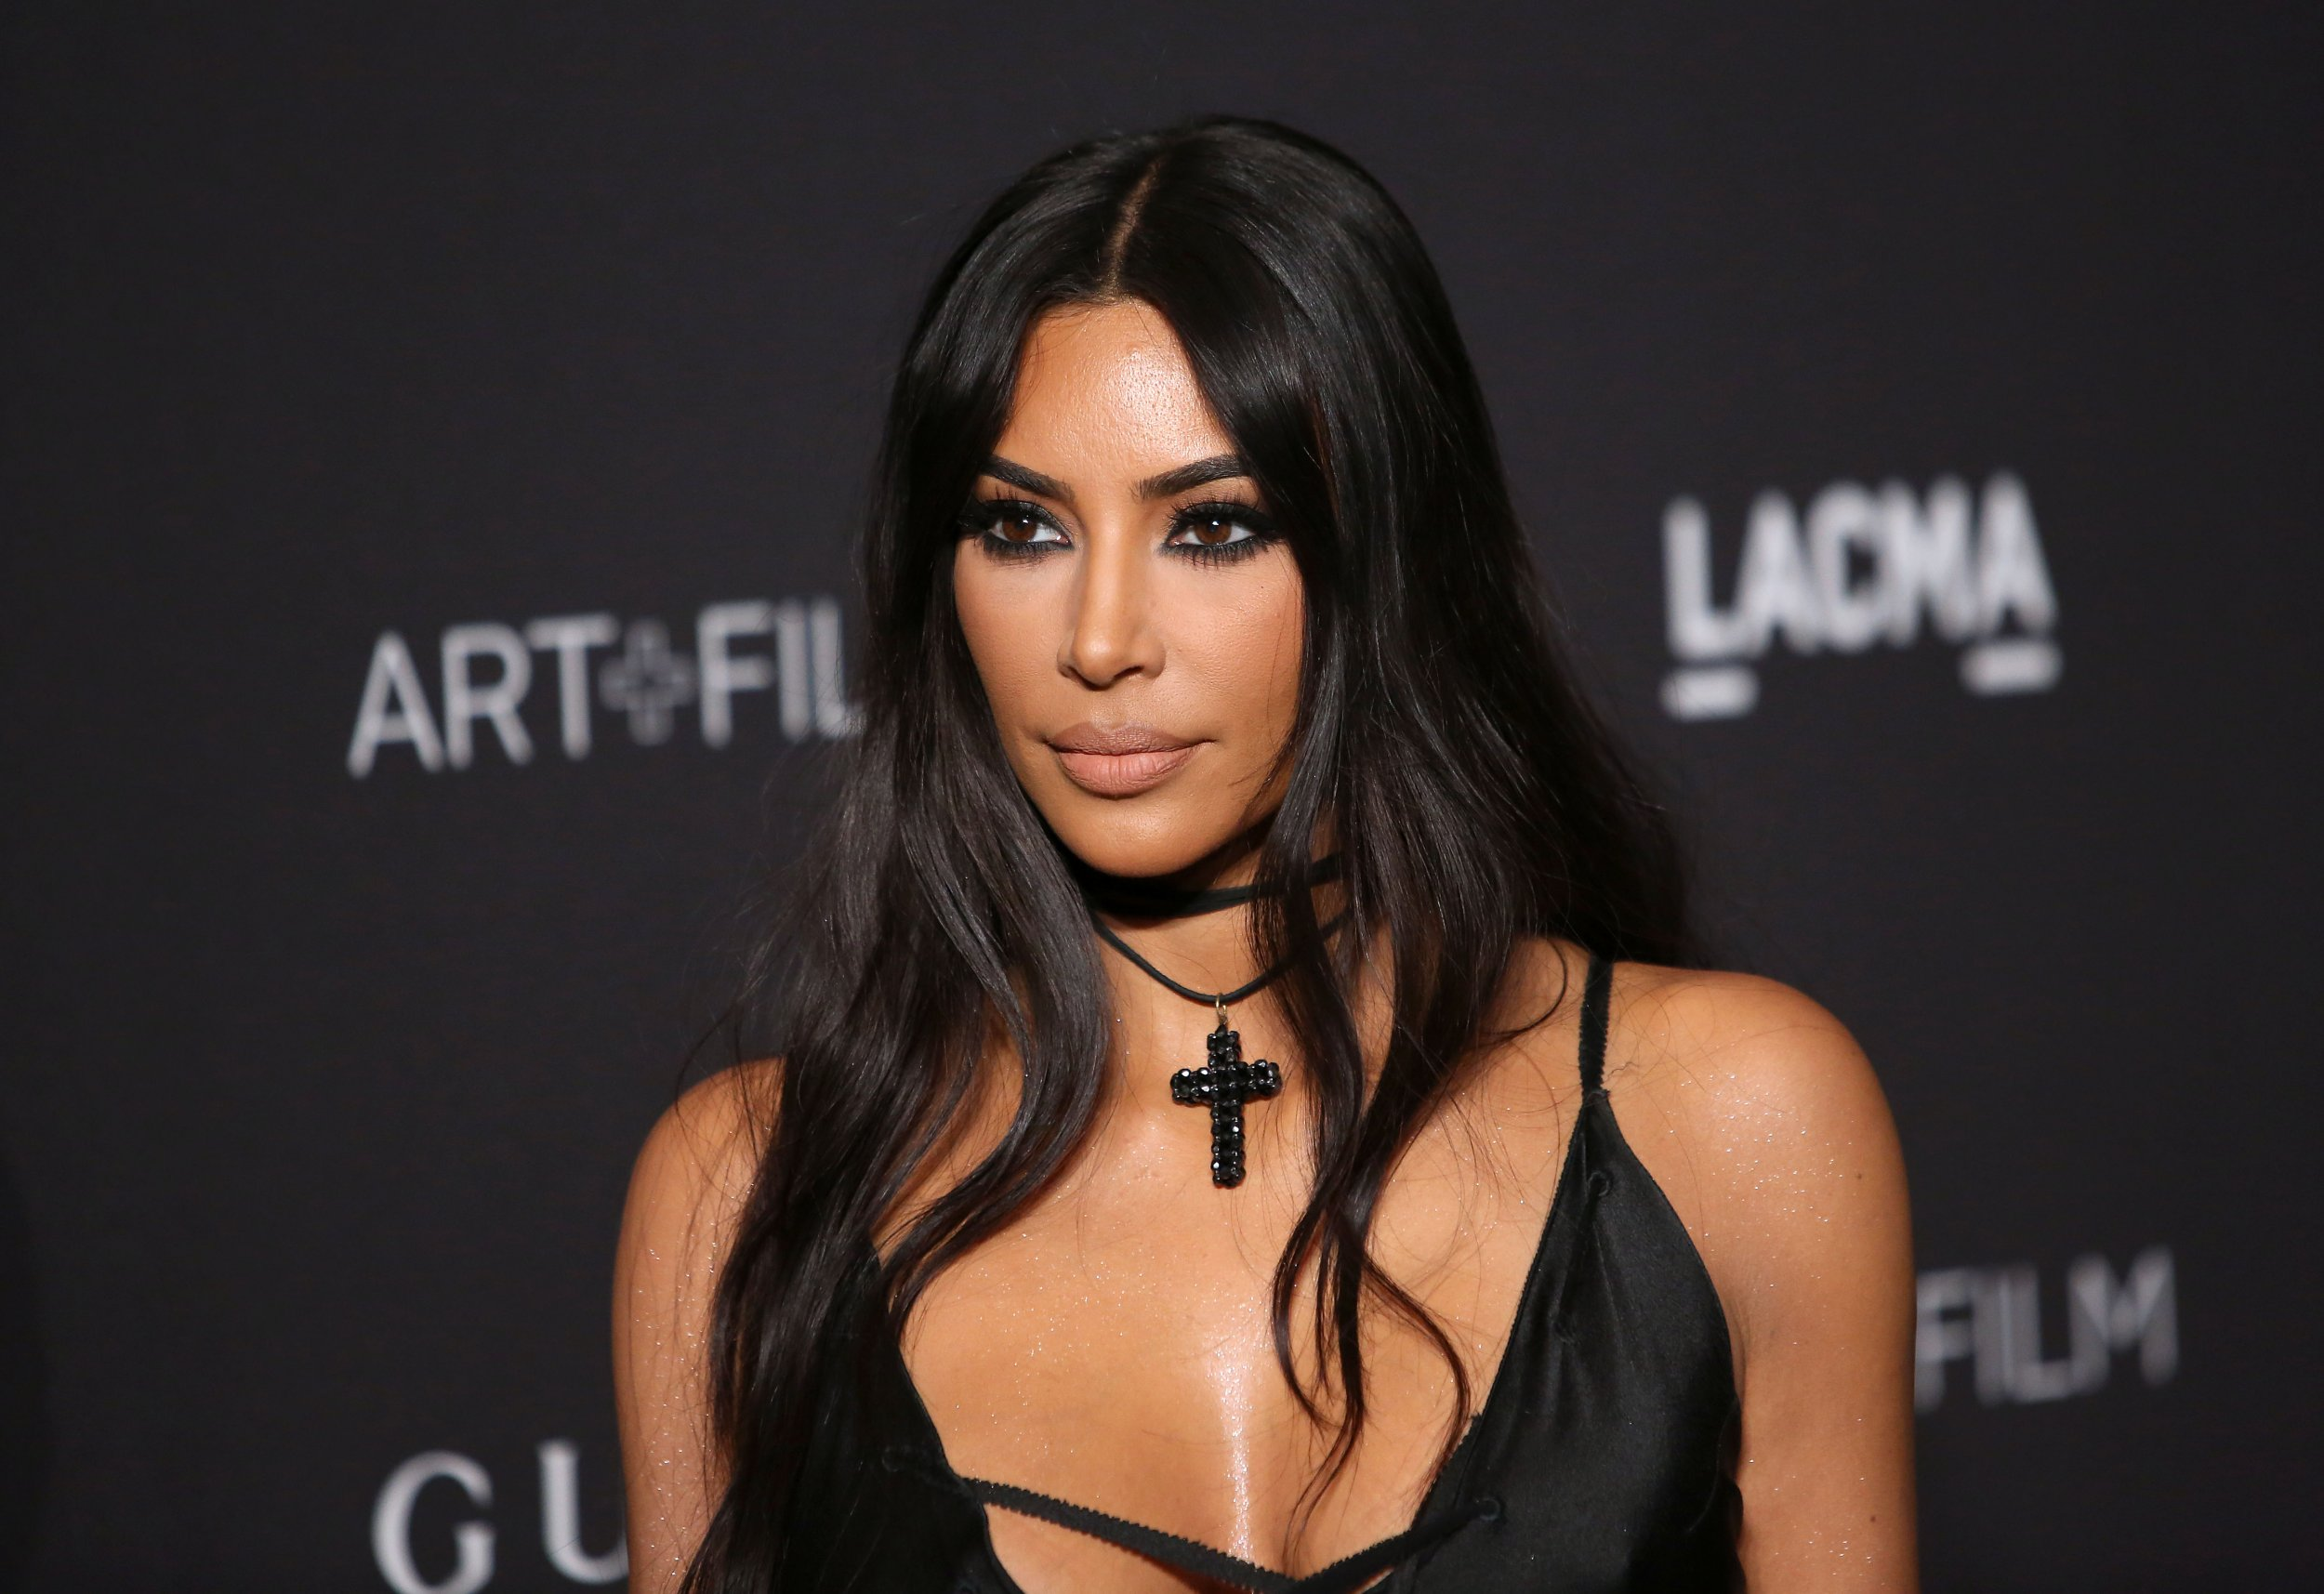 Kim Kardashian Calls Out Tabloid